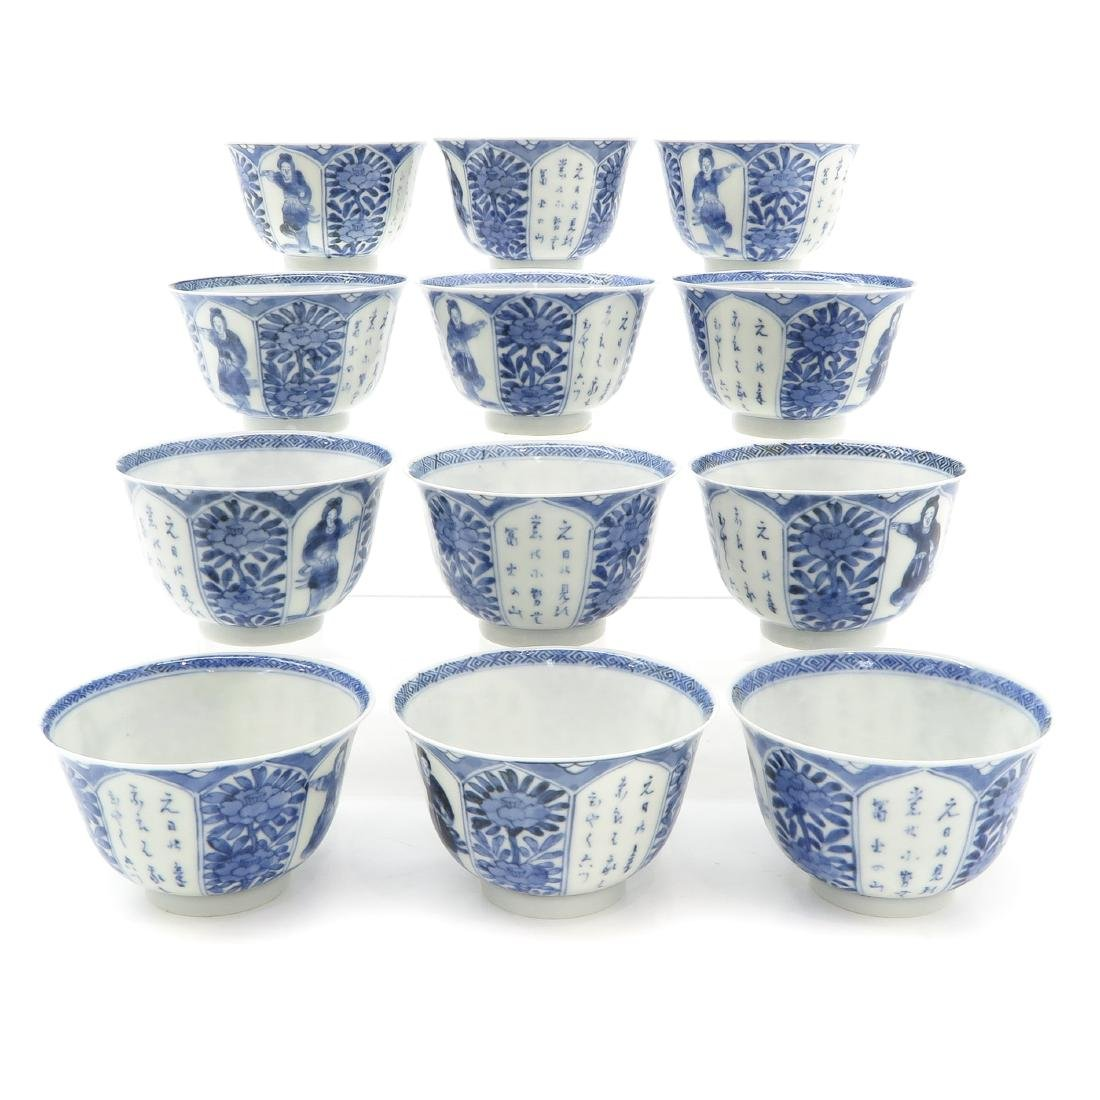 Lot of 12 Cups - 4